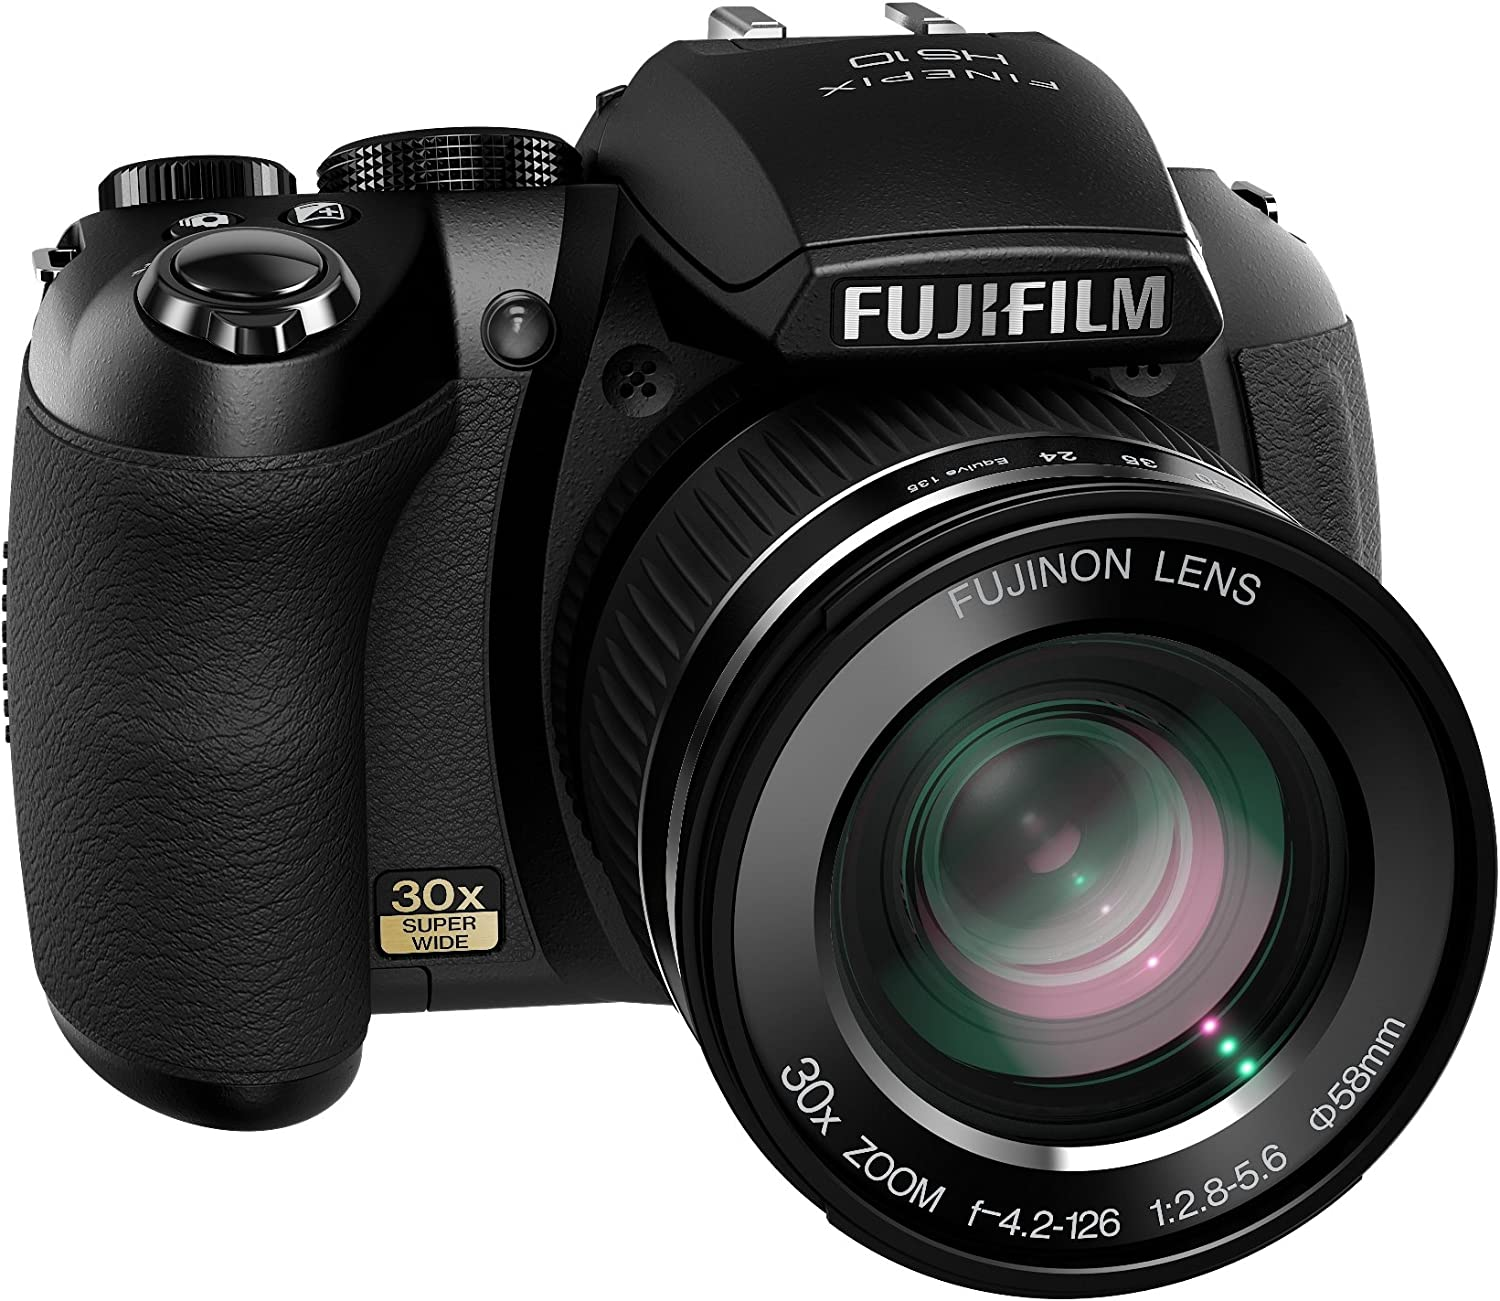 Fujifilm FinePix HS10 - Cámara Digital Compacta 10.3 MP (3 ...